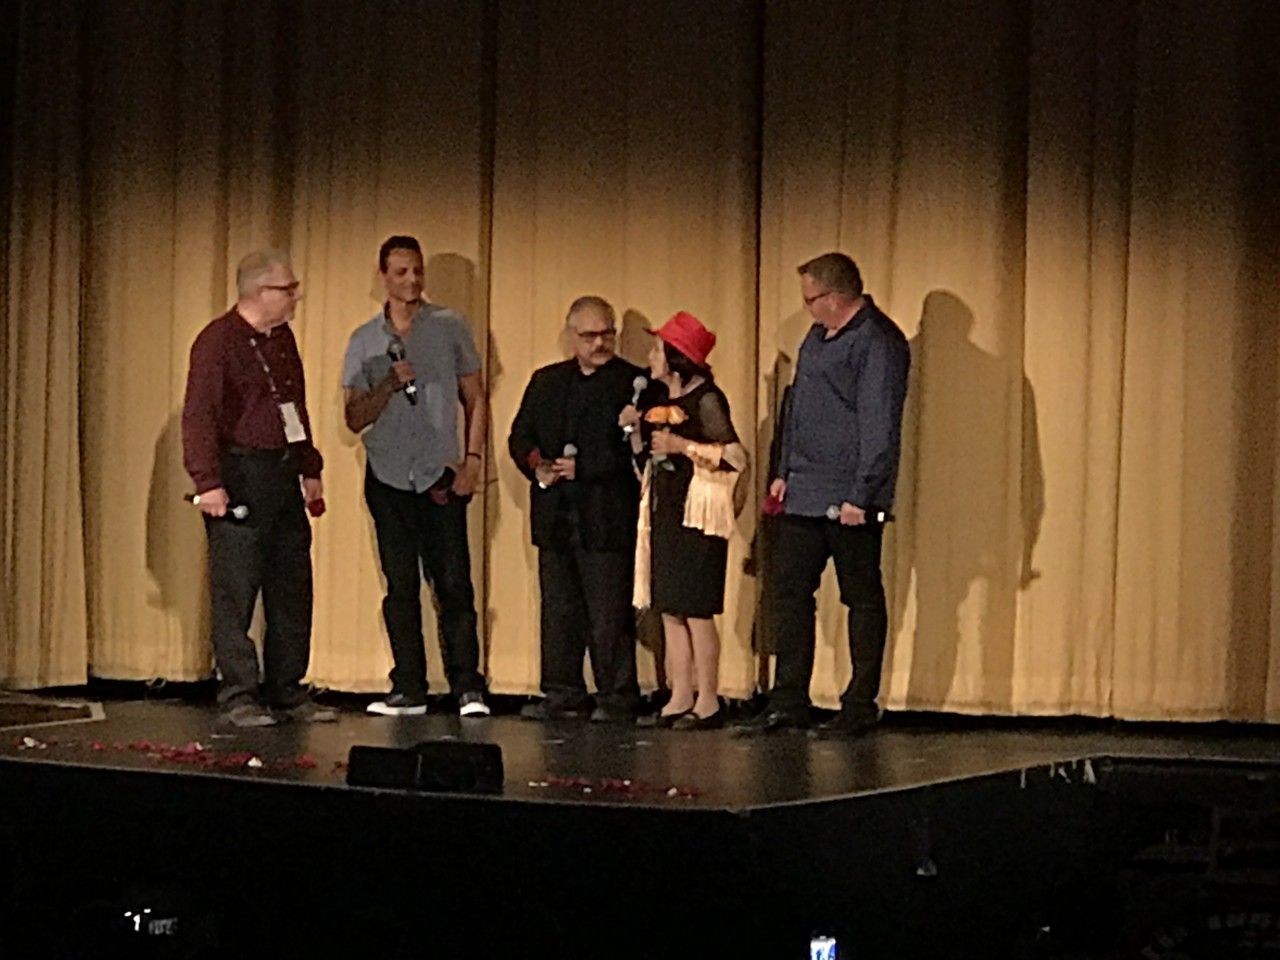 Discussion following the film. Second from left, Ben Pratt, middle, Luis Valdez, and second from right, Dolores Huerta. Photo courtesy of Rick Rivas.